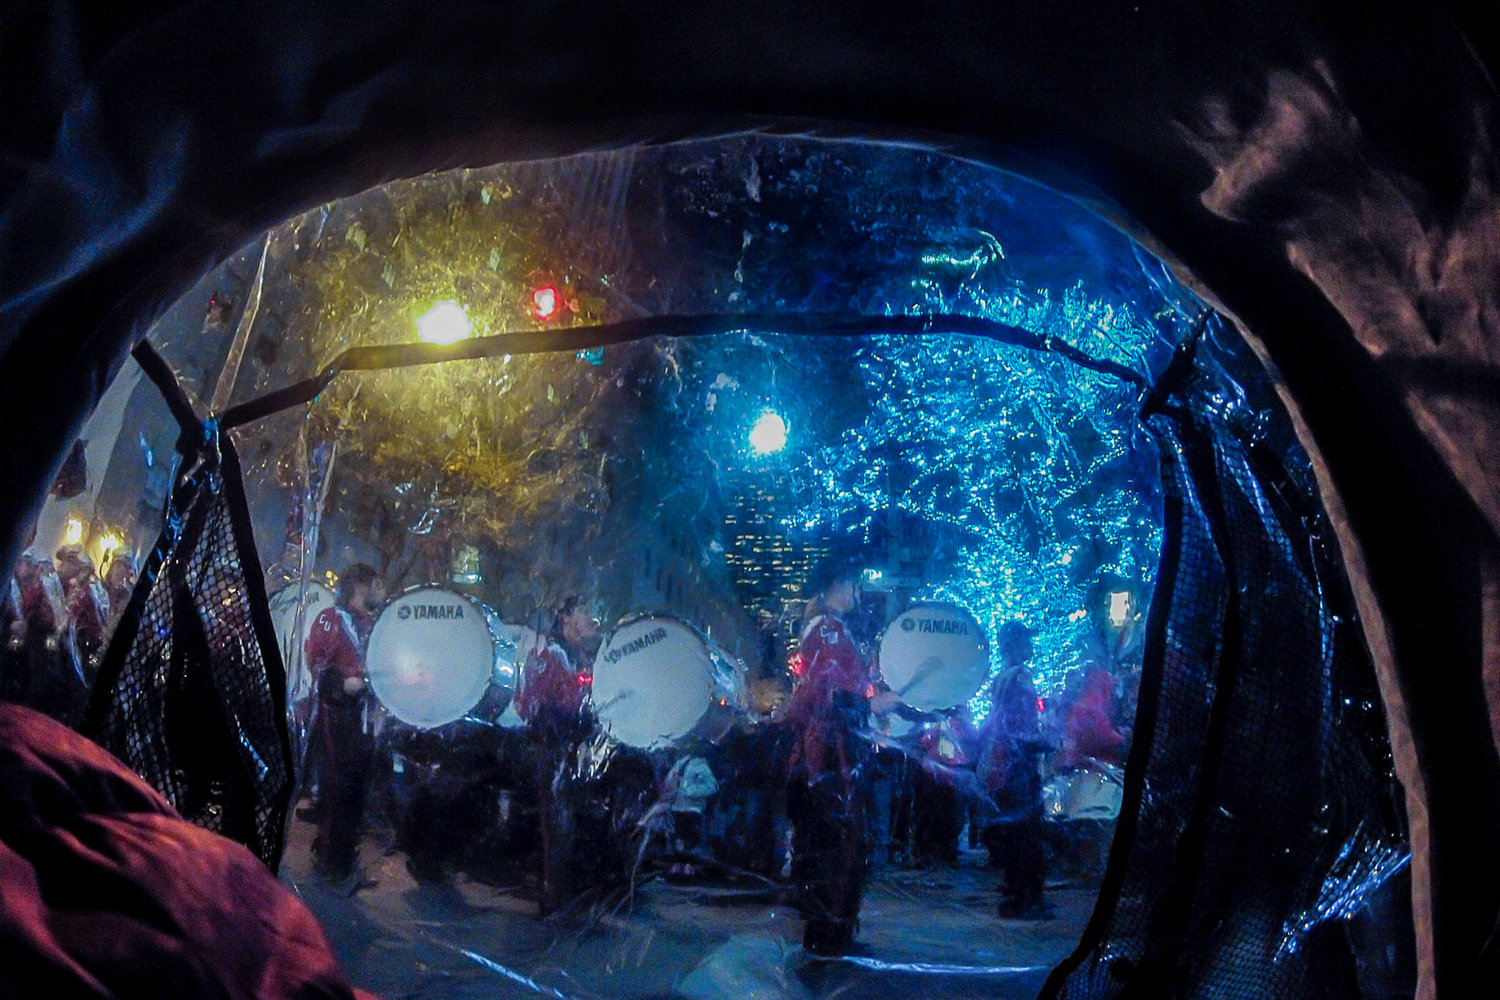 At Rockefeller Center for the first time, when a marching band appeared suddenly.